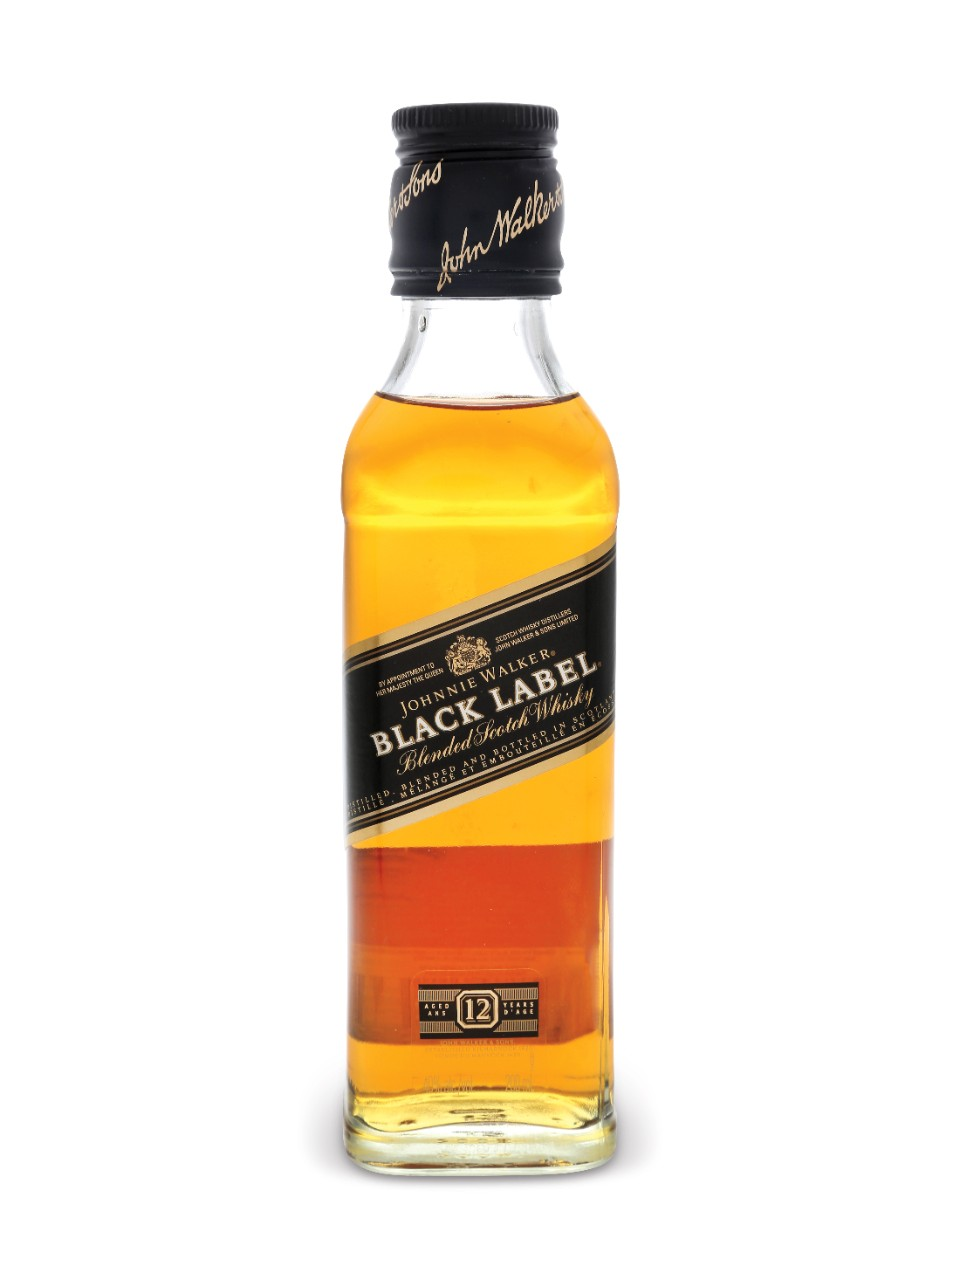 Johnnie Walker Black Label Scotch Whisky from LCBO